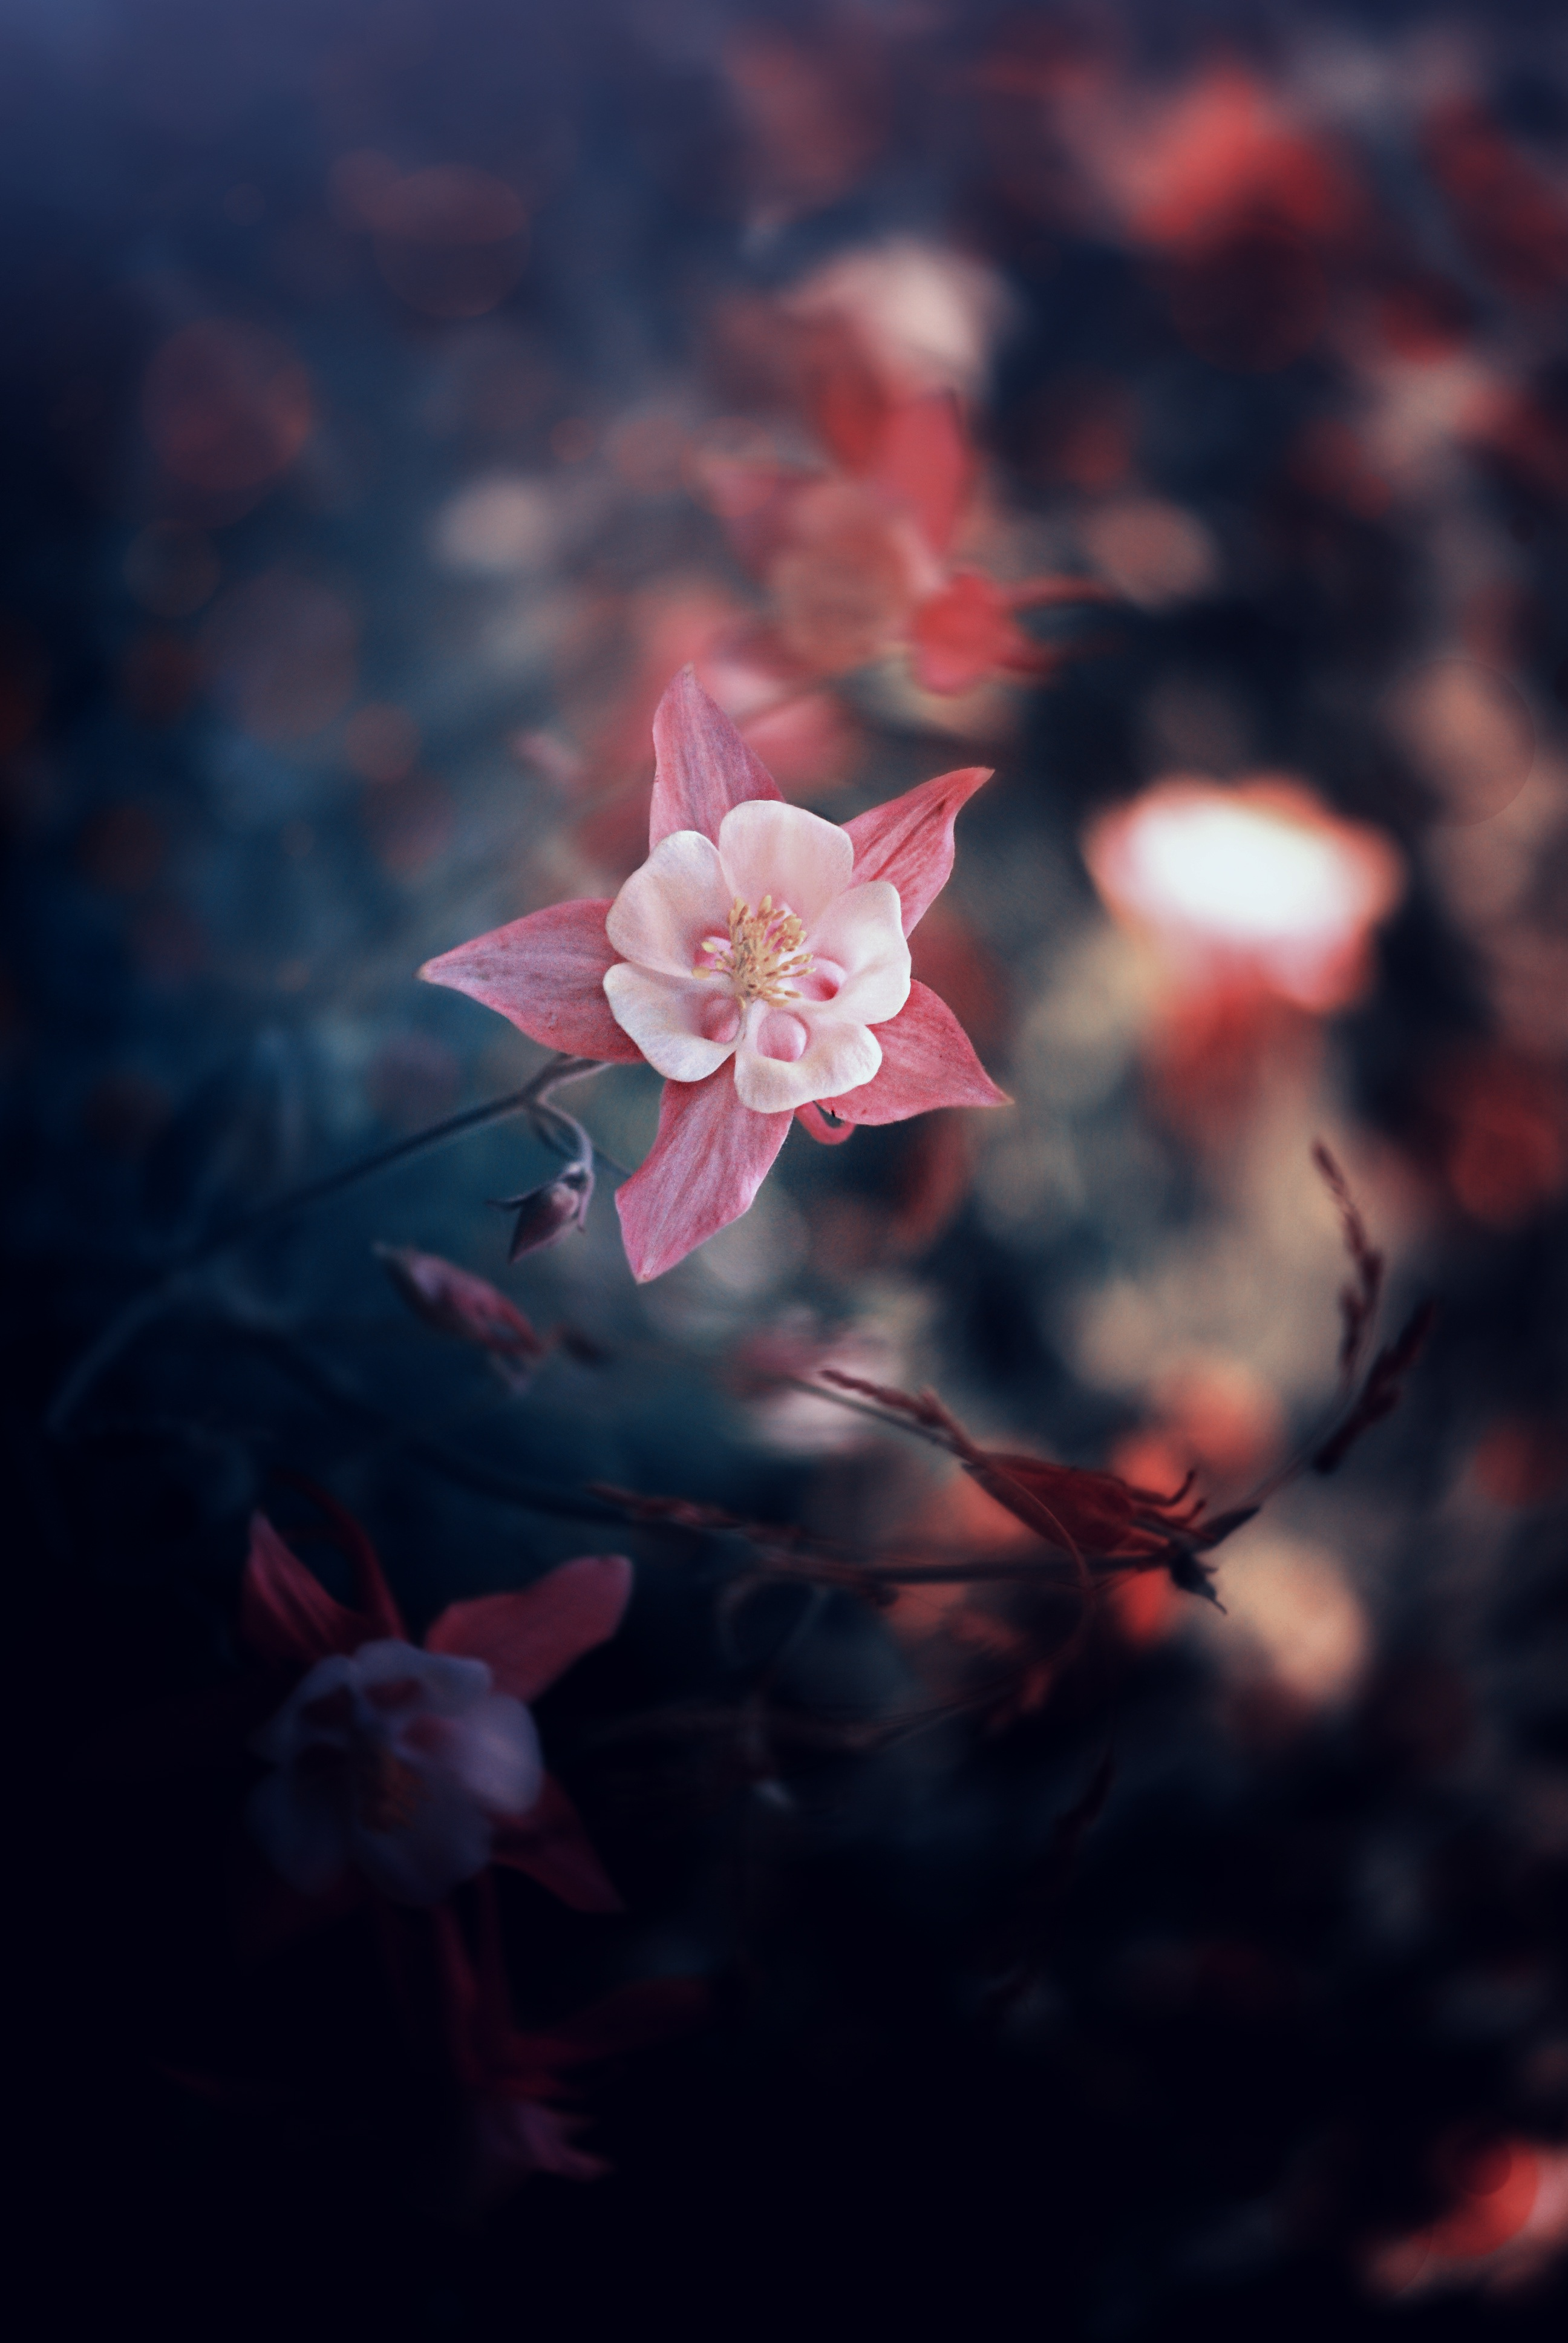 137365 Screensavers and Wallpapers Petals for phone. Download Flowers, Leaves, Pink, Flower, Petals, Blur, Smooth, Bloom, Flowering pictures for free